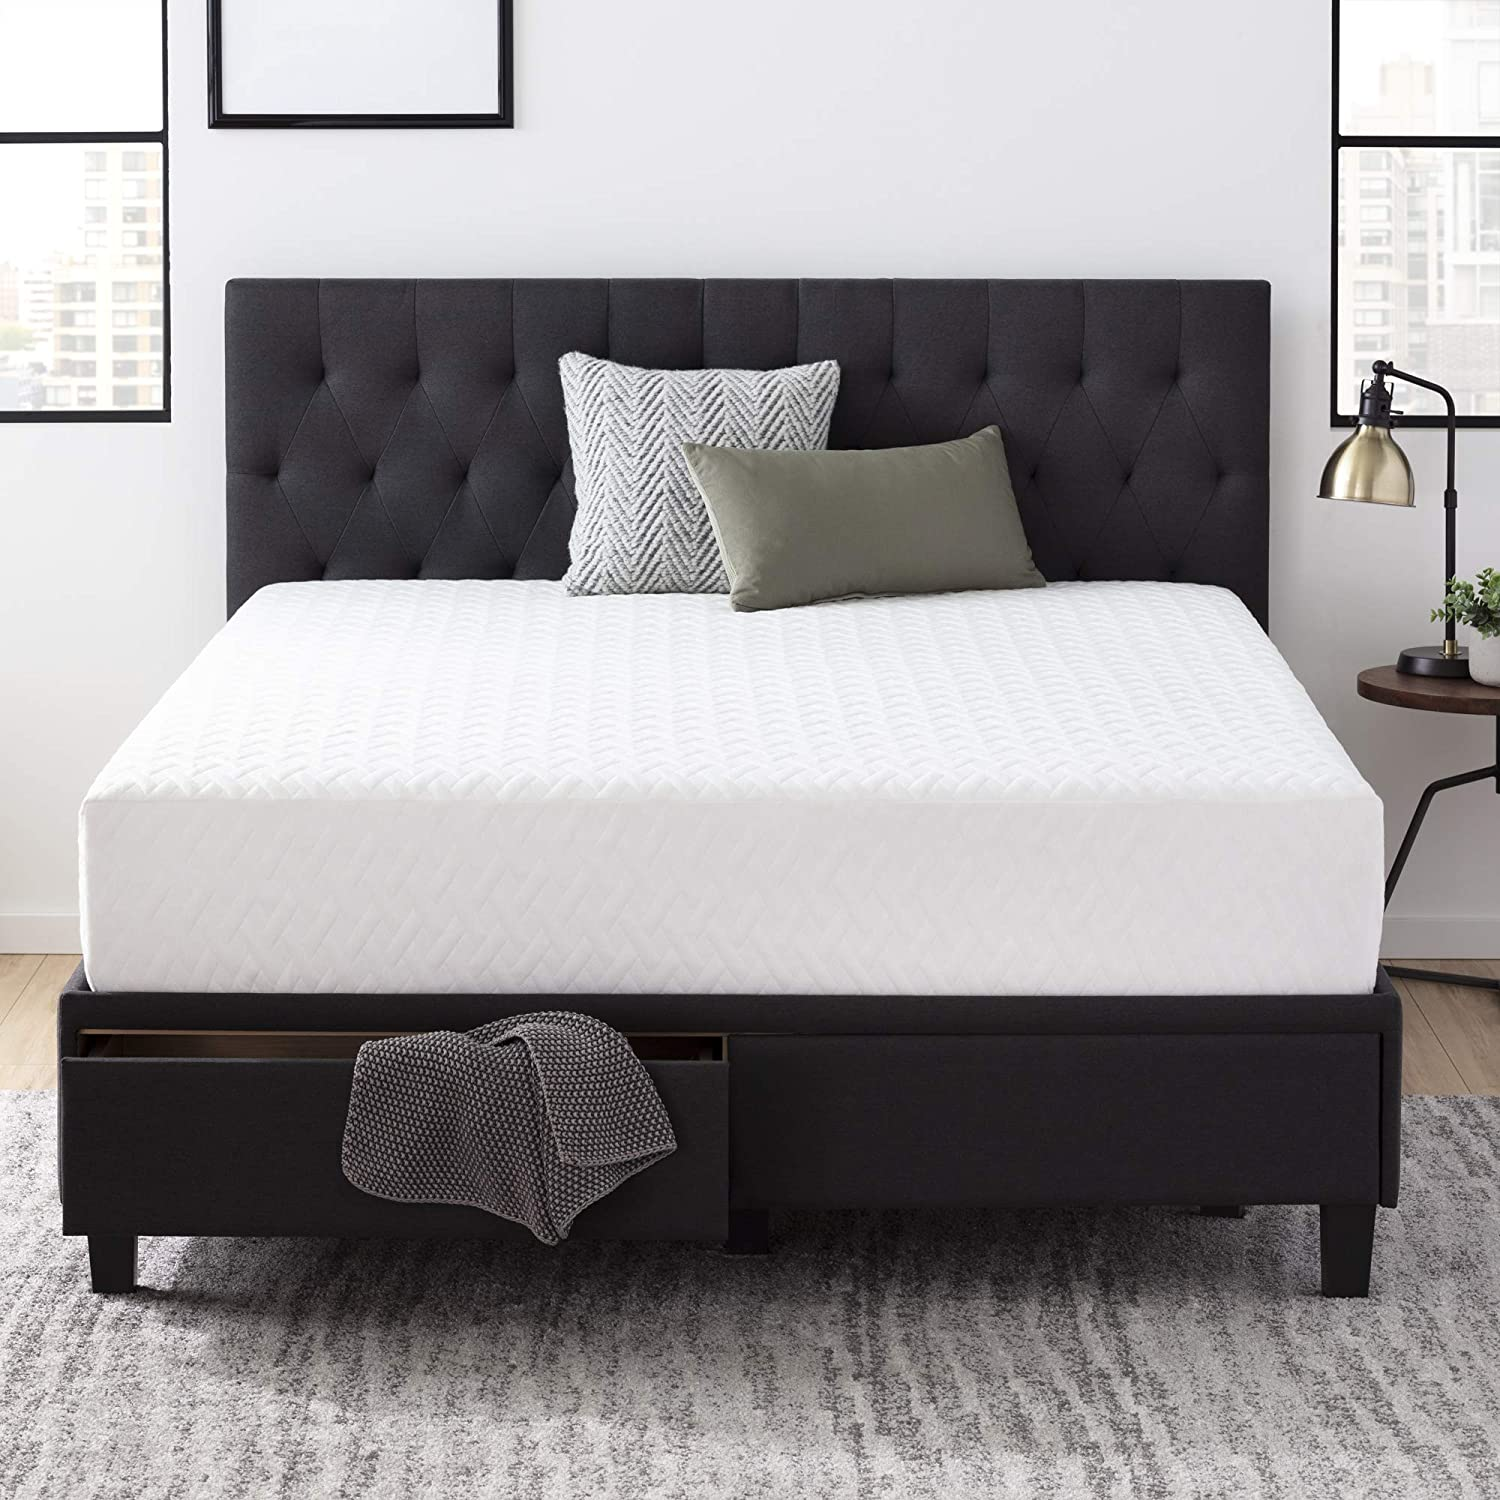 Everlane Home Windsor Upholstered Bed with Built-in Drawers - Slate - Cal King & Everlane Home 10 Inch Gel Infused Memory Foam Mattress - Cal King